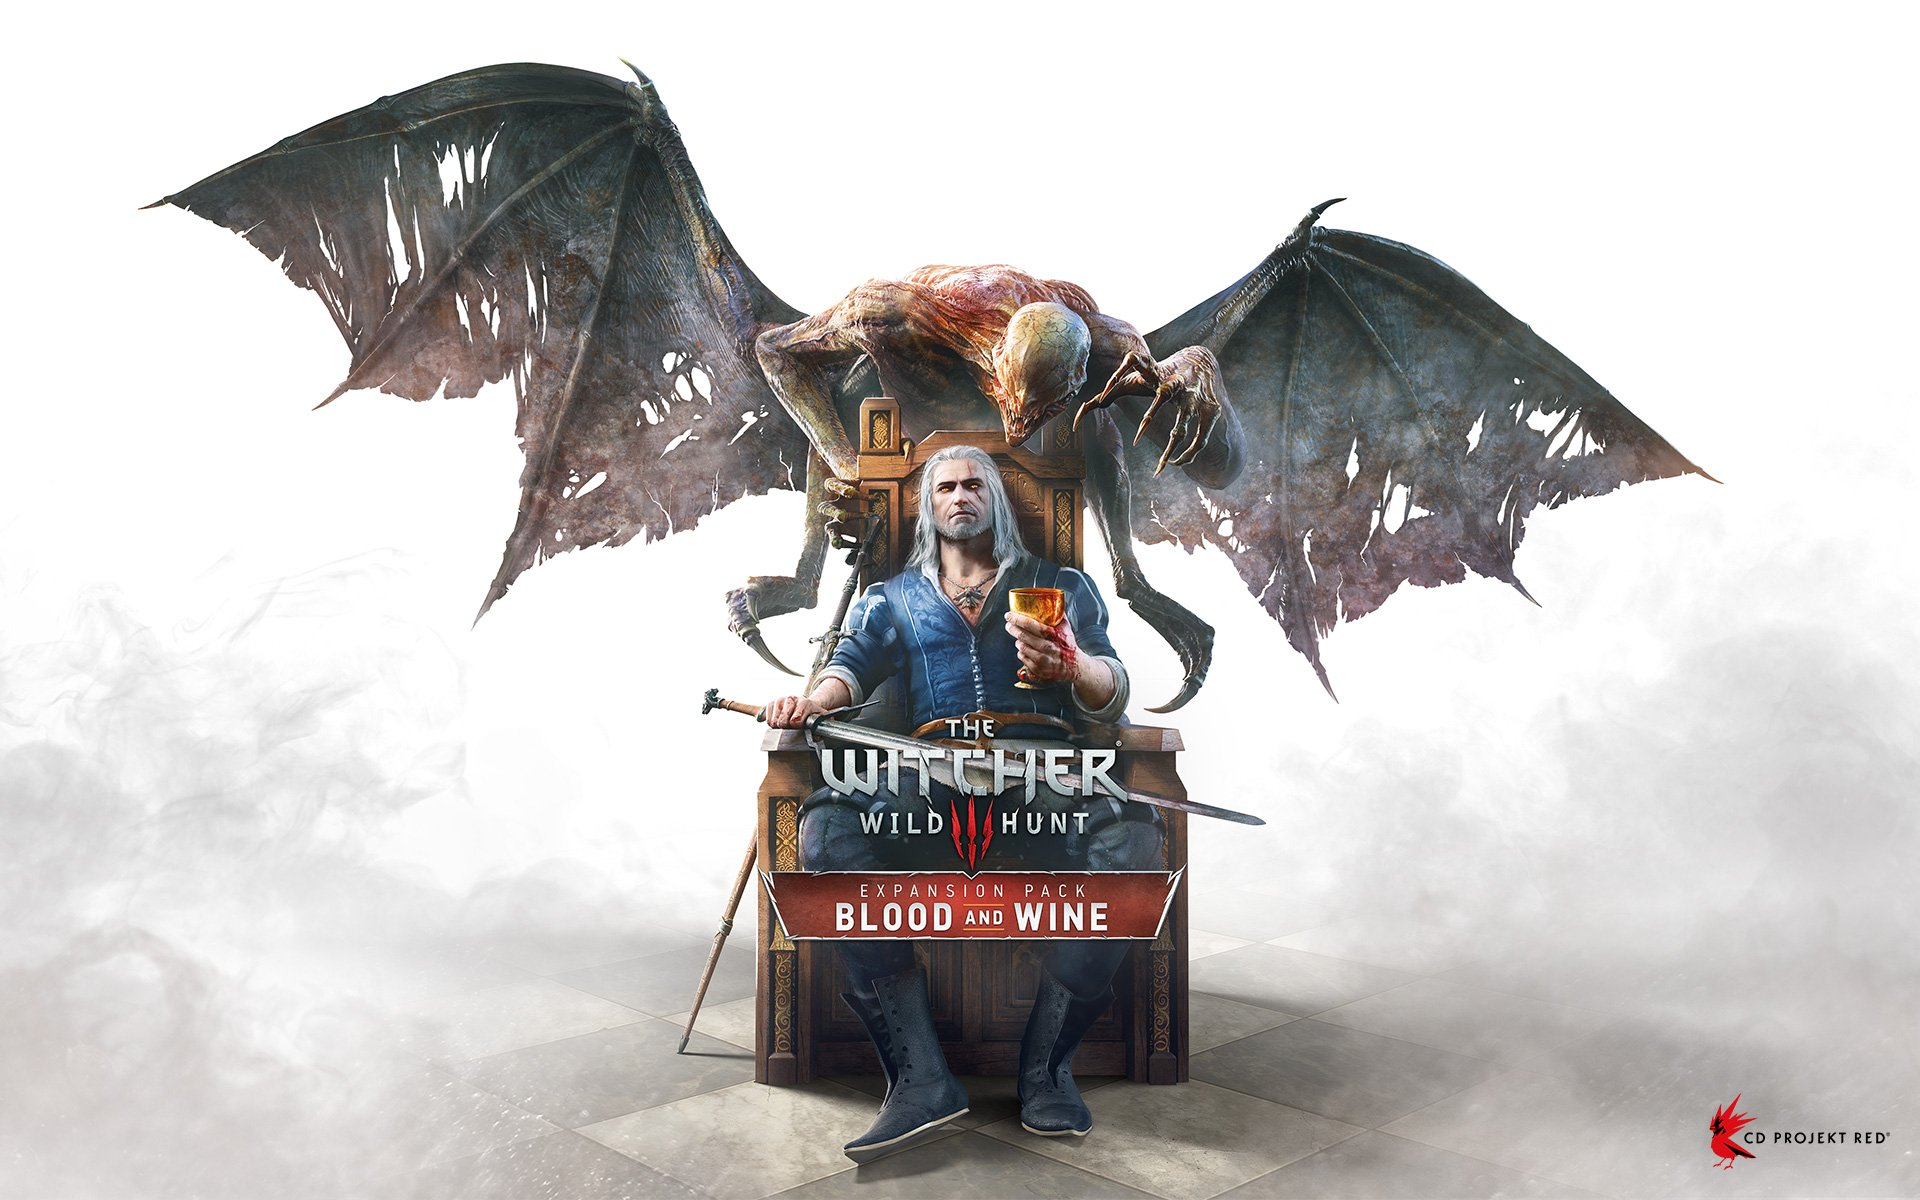 The-Witcher-3-Wild-Hunt-180416-001